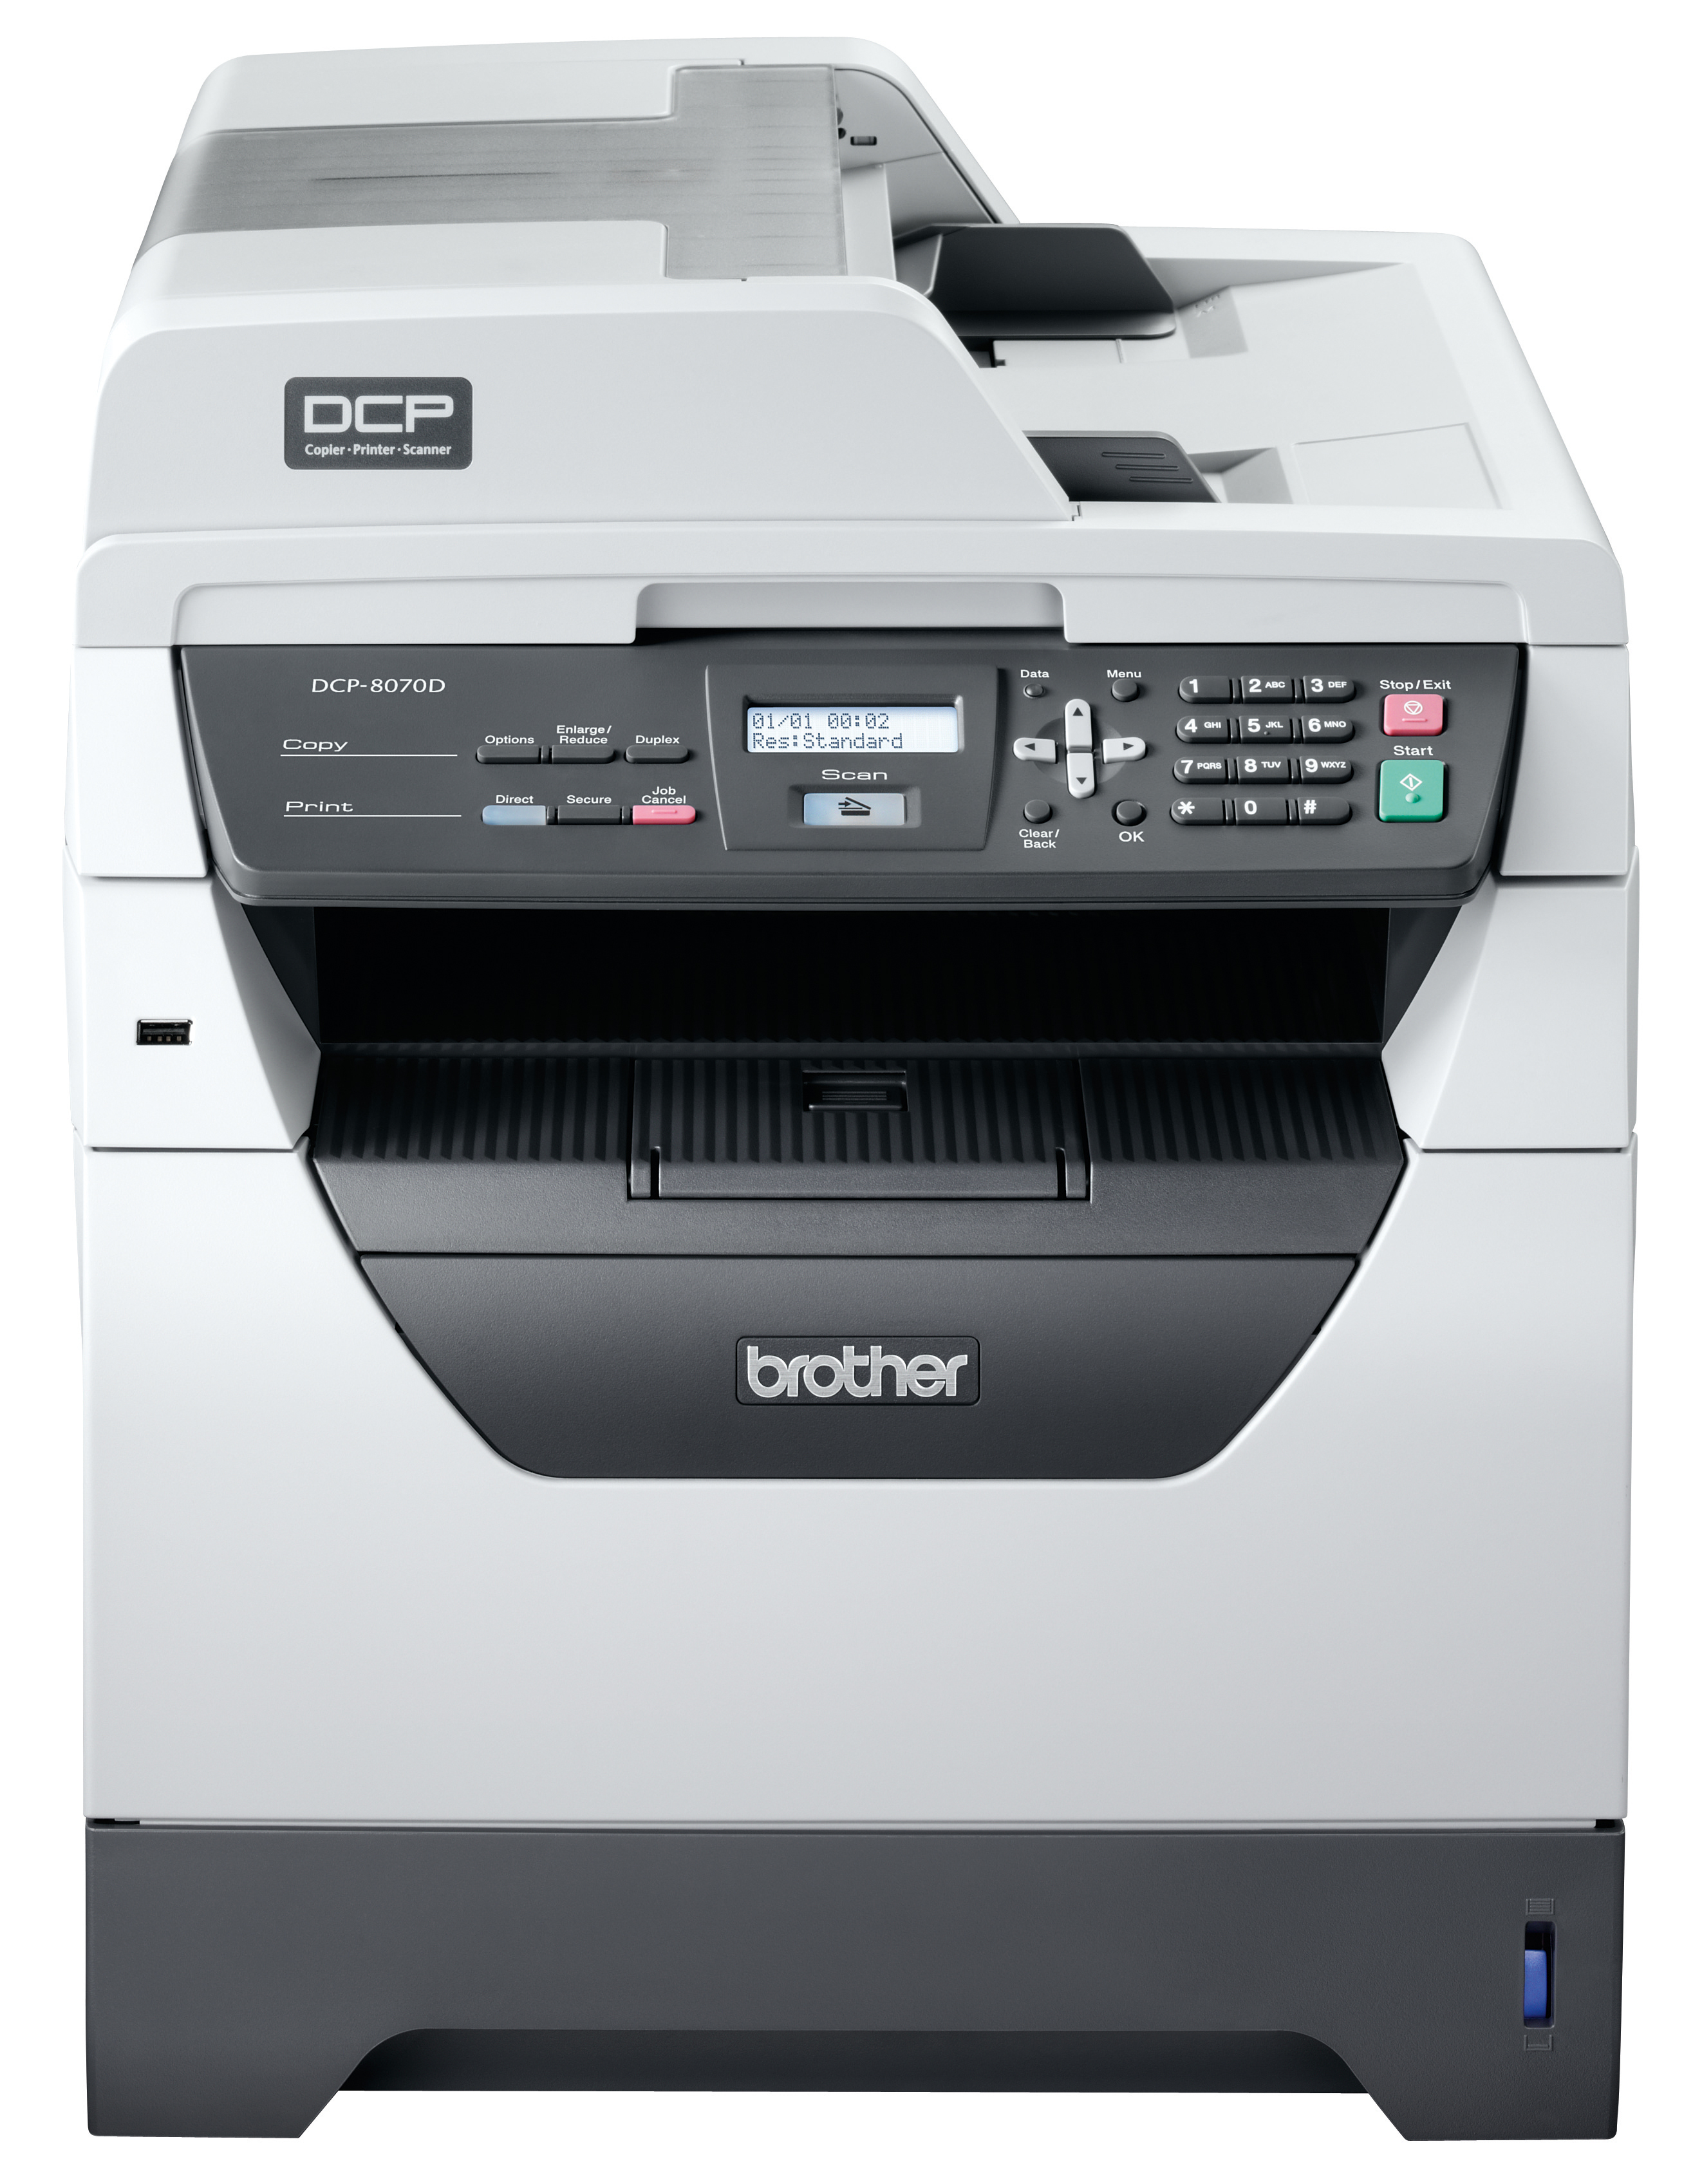 Brother DCP-8070 (DCP-serie)